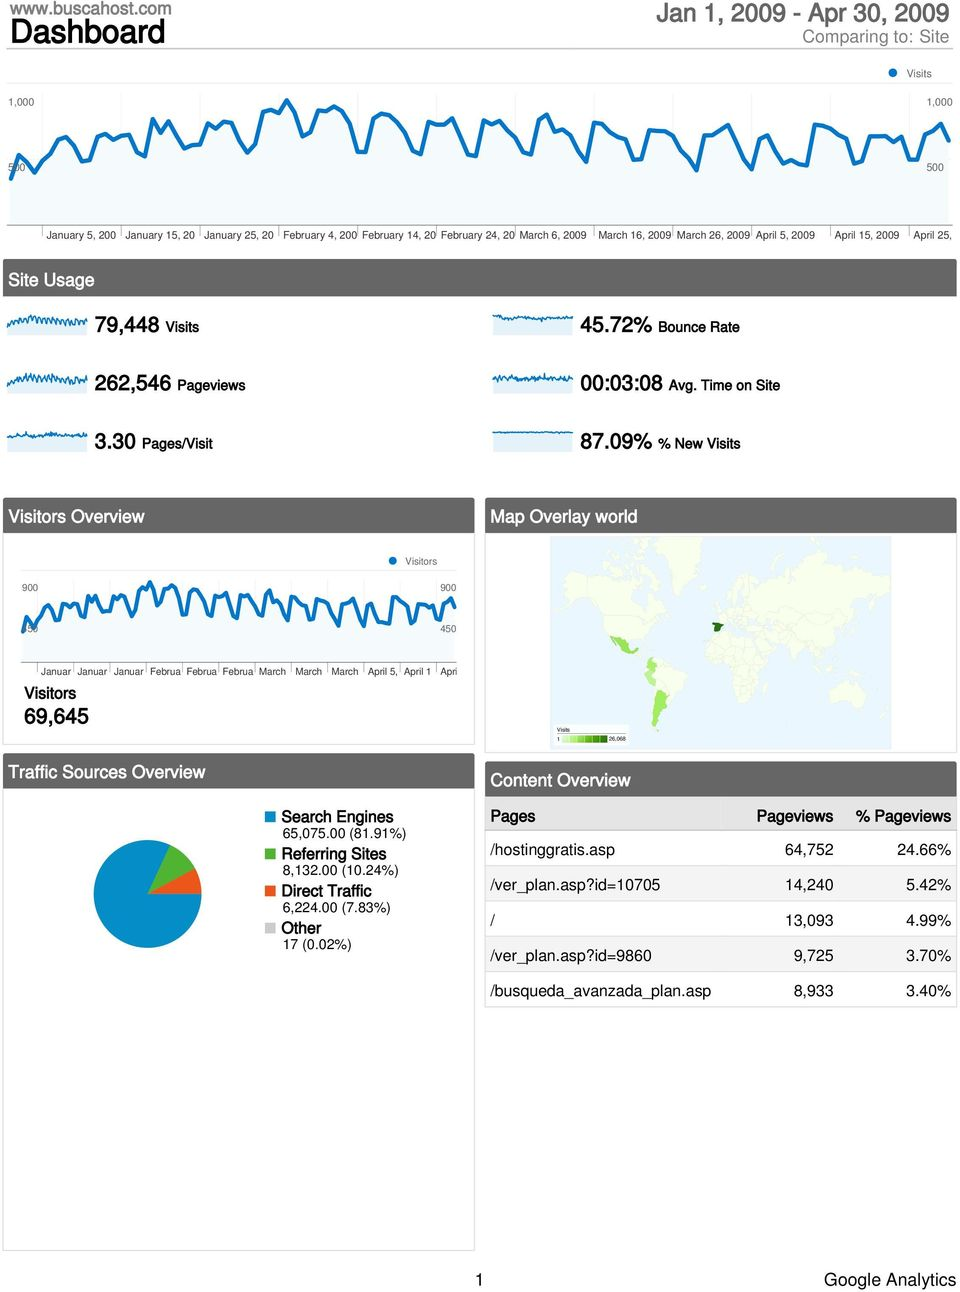 April 5, 29 April 15, 29 April 25, 29 Site Usage 79,448 Visits 45.72% Bounce Rate 262,546 Pageviews :3:8 Avg. Time on Site 3.3 Pages/Visit 87.